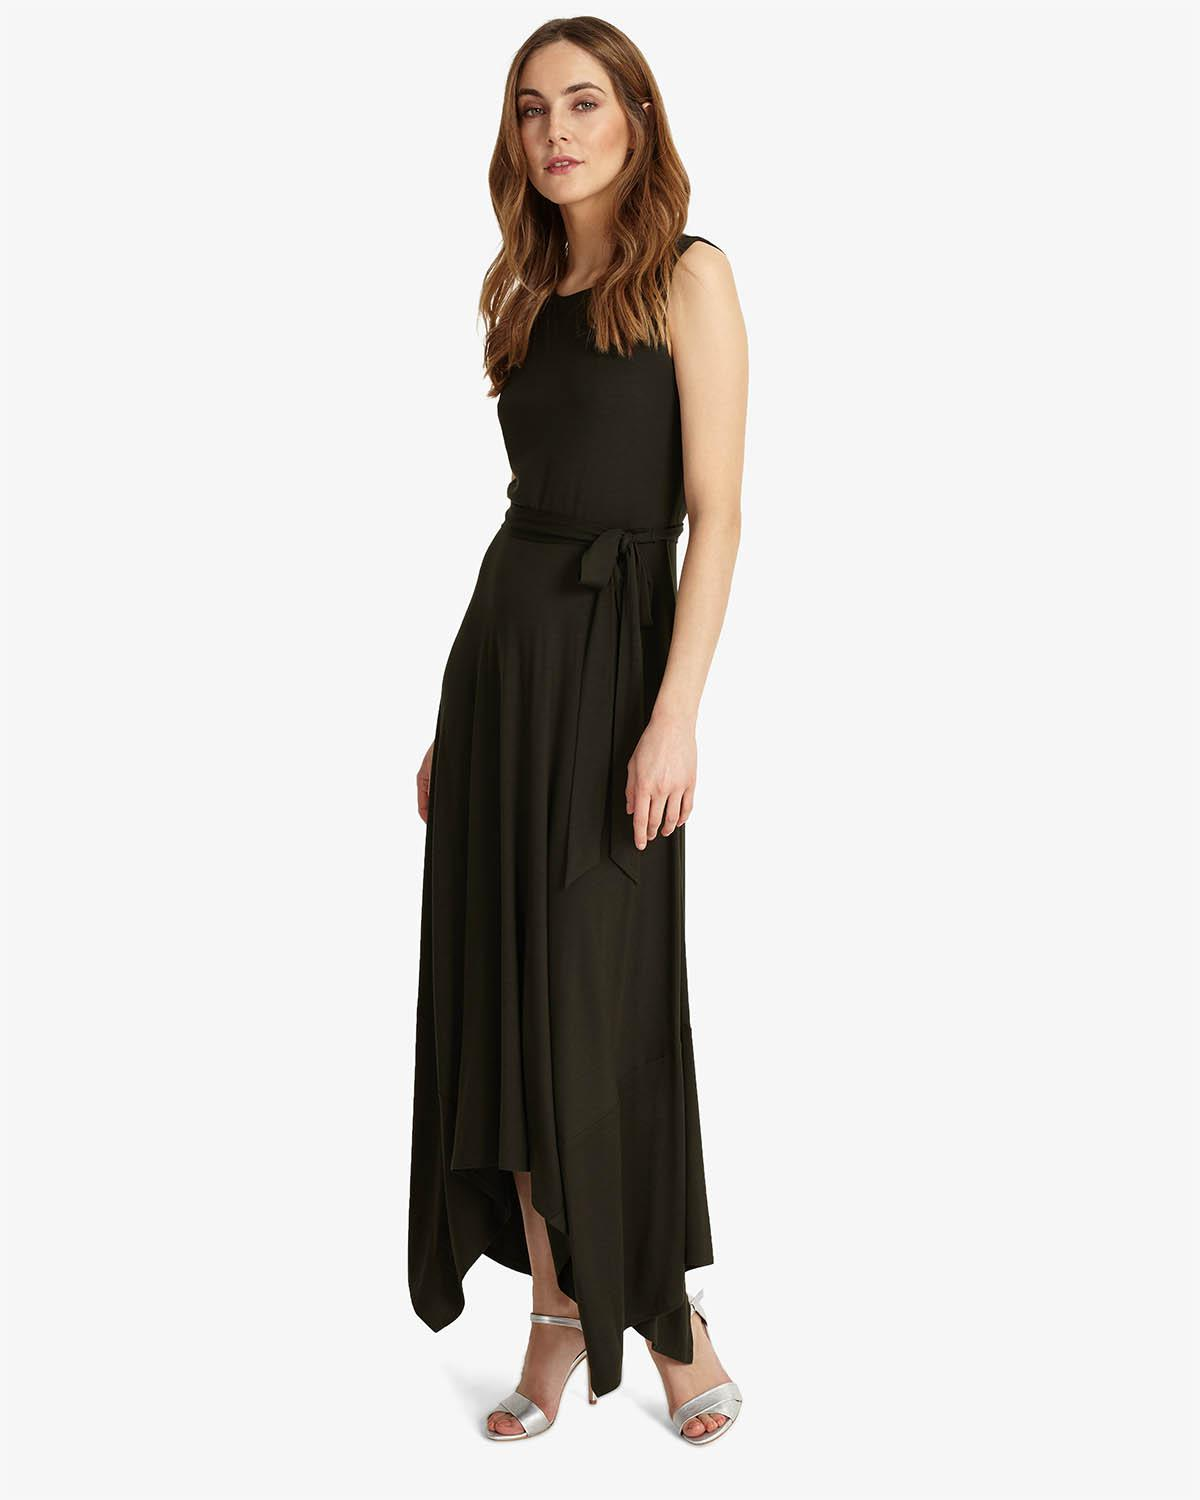 6d64b3a23d Phase Eight Margot Maxi Dress in Black - Lyst